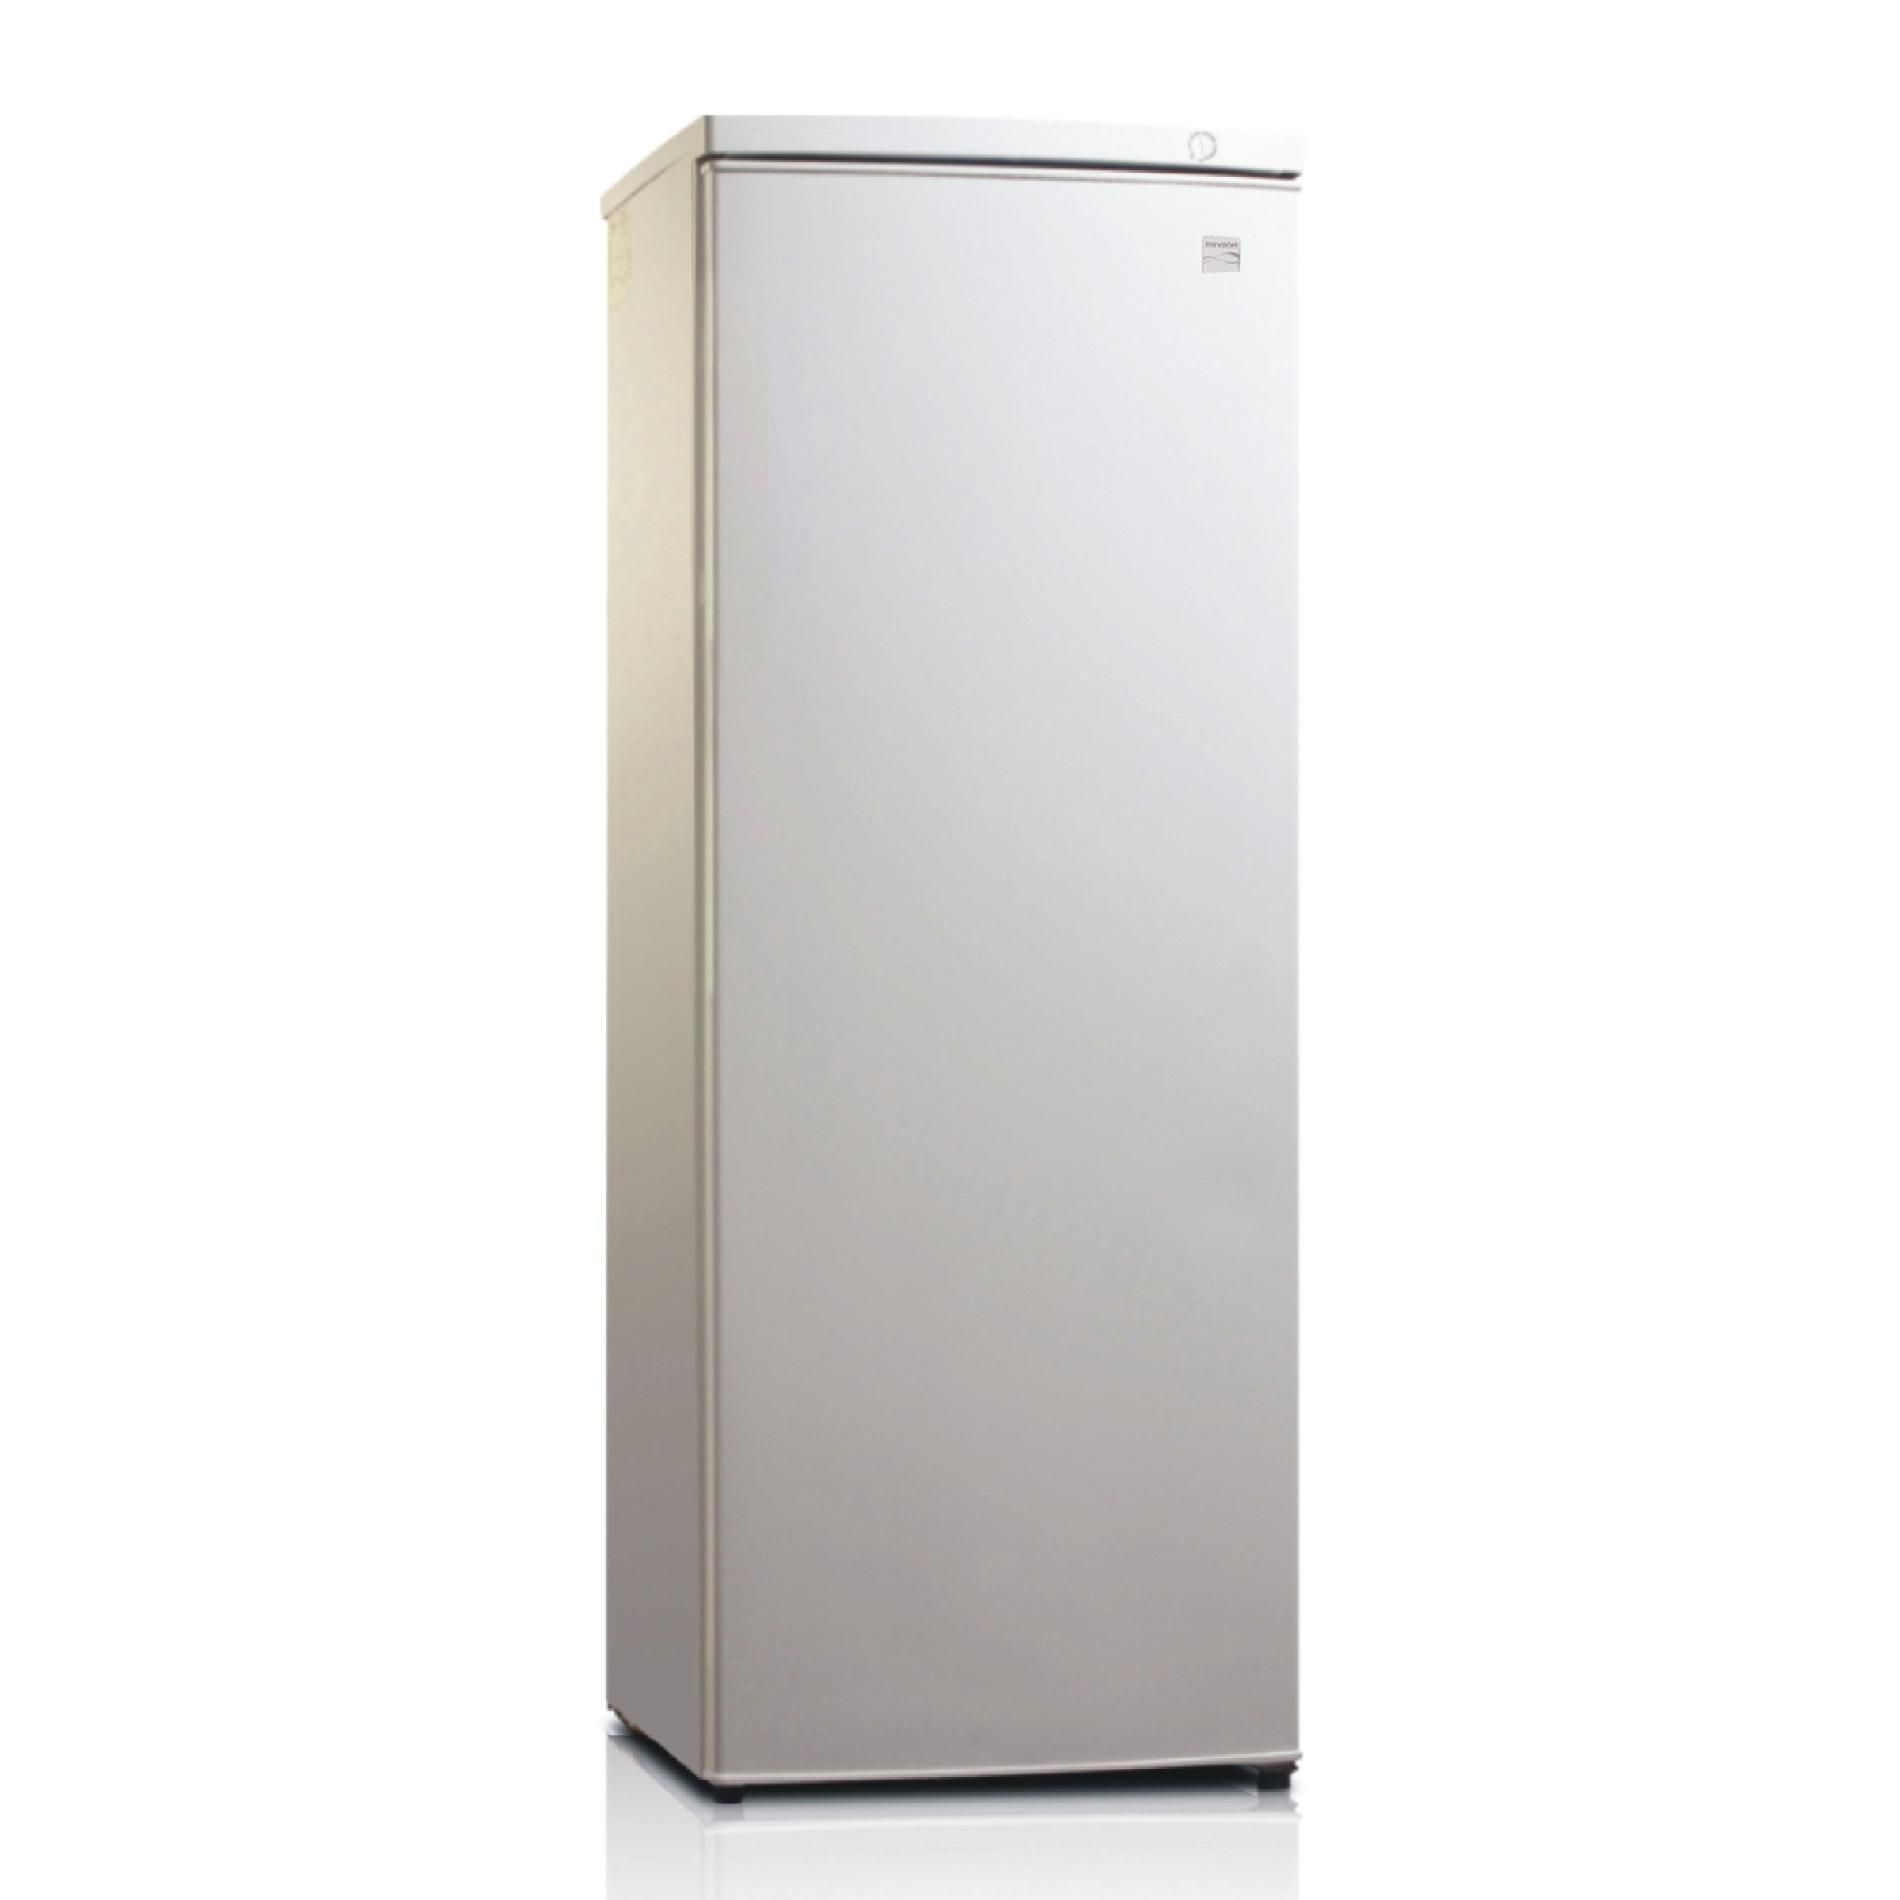 Kmart Freezer Kenmore 6 5 Cu Ft Upright Freezer Efficient Storage At